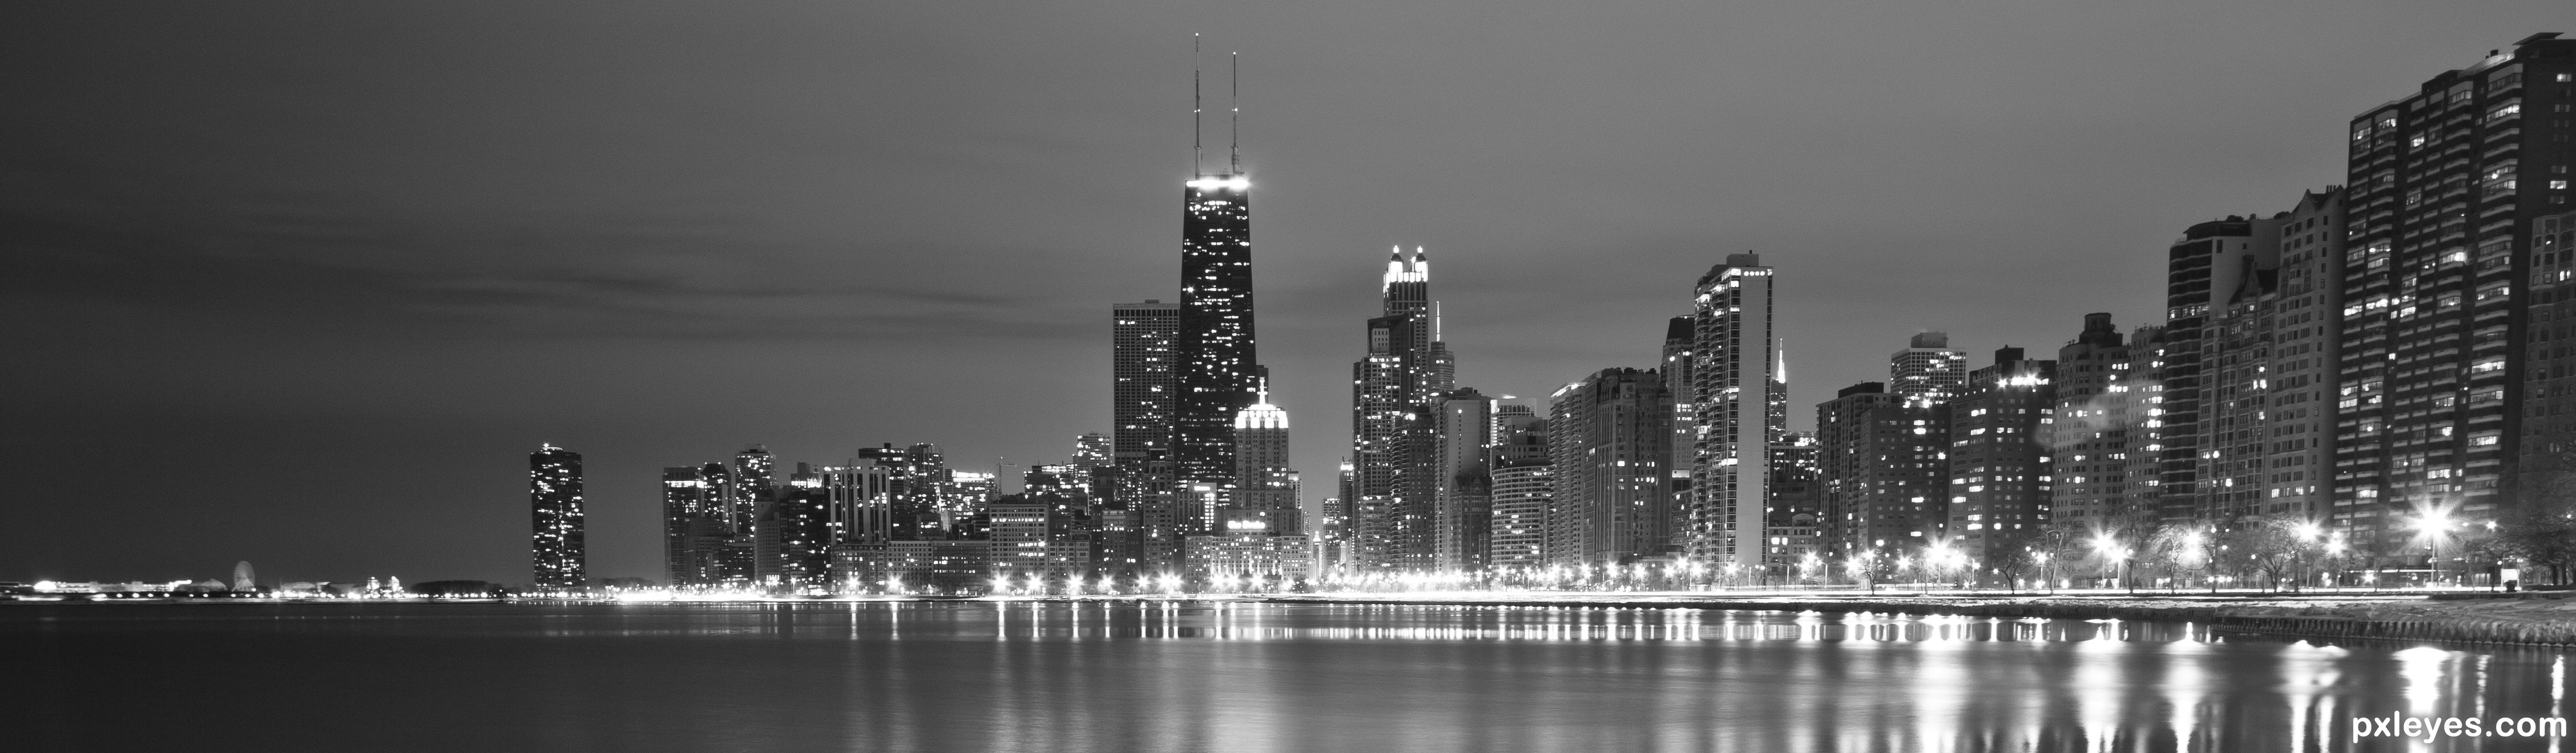 Chicago by Night picture, by ctbugan for: night shots 3